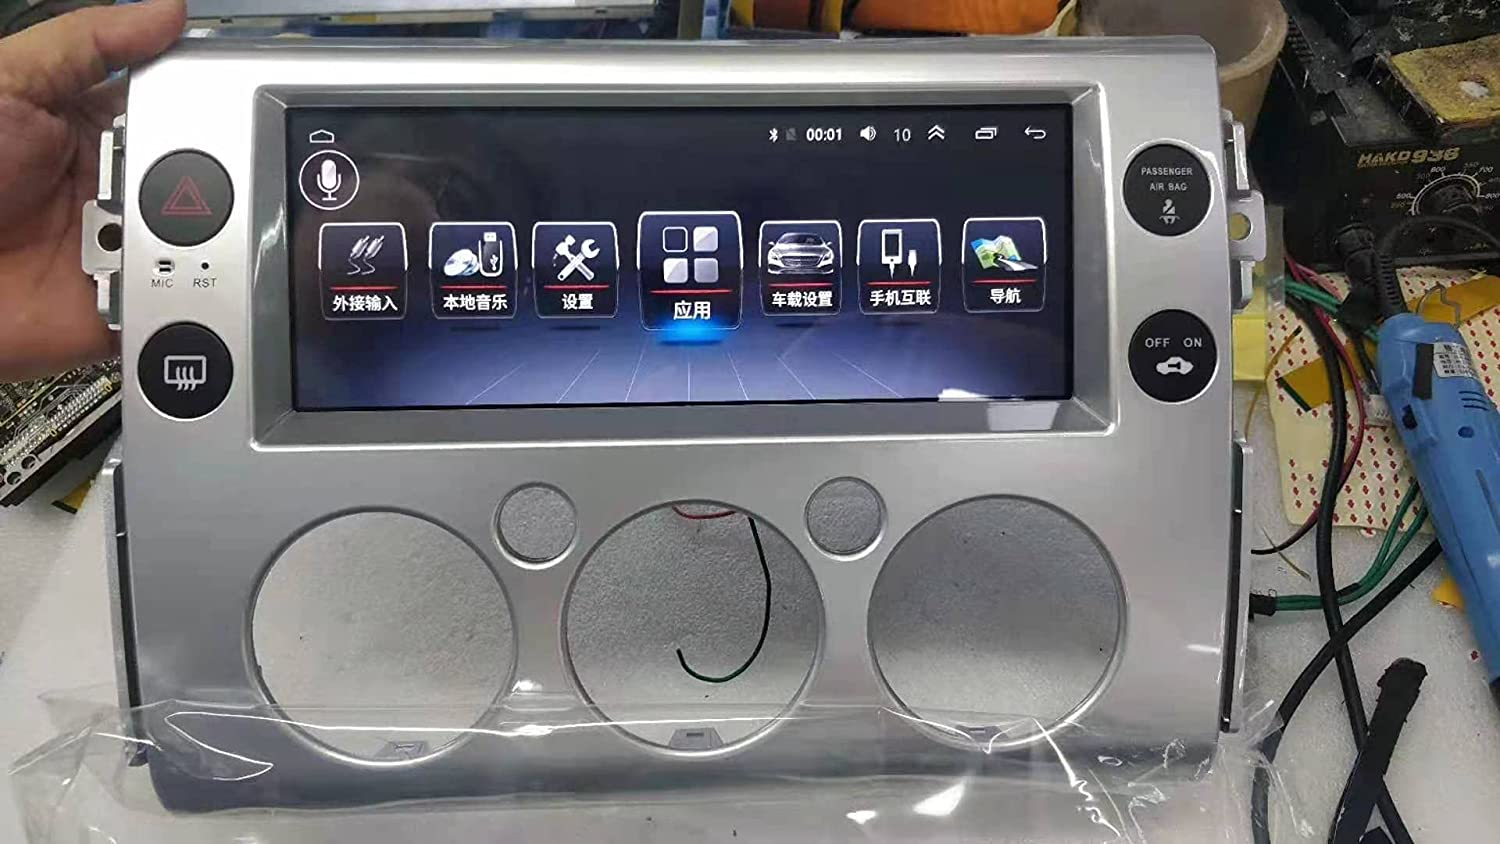 10.25 inches Android Max 88% OFF 10 Autoradio Multimed Stereo National products Car Navigation